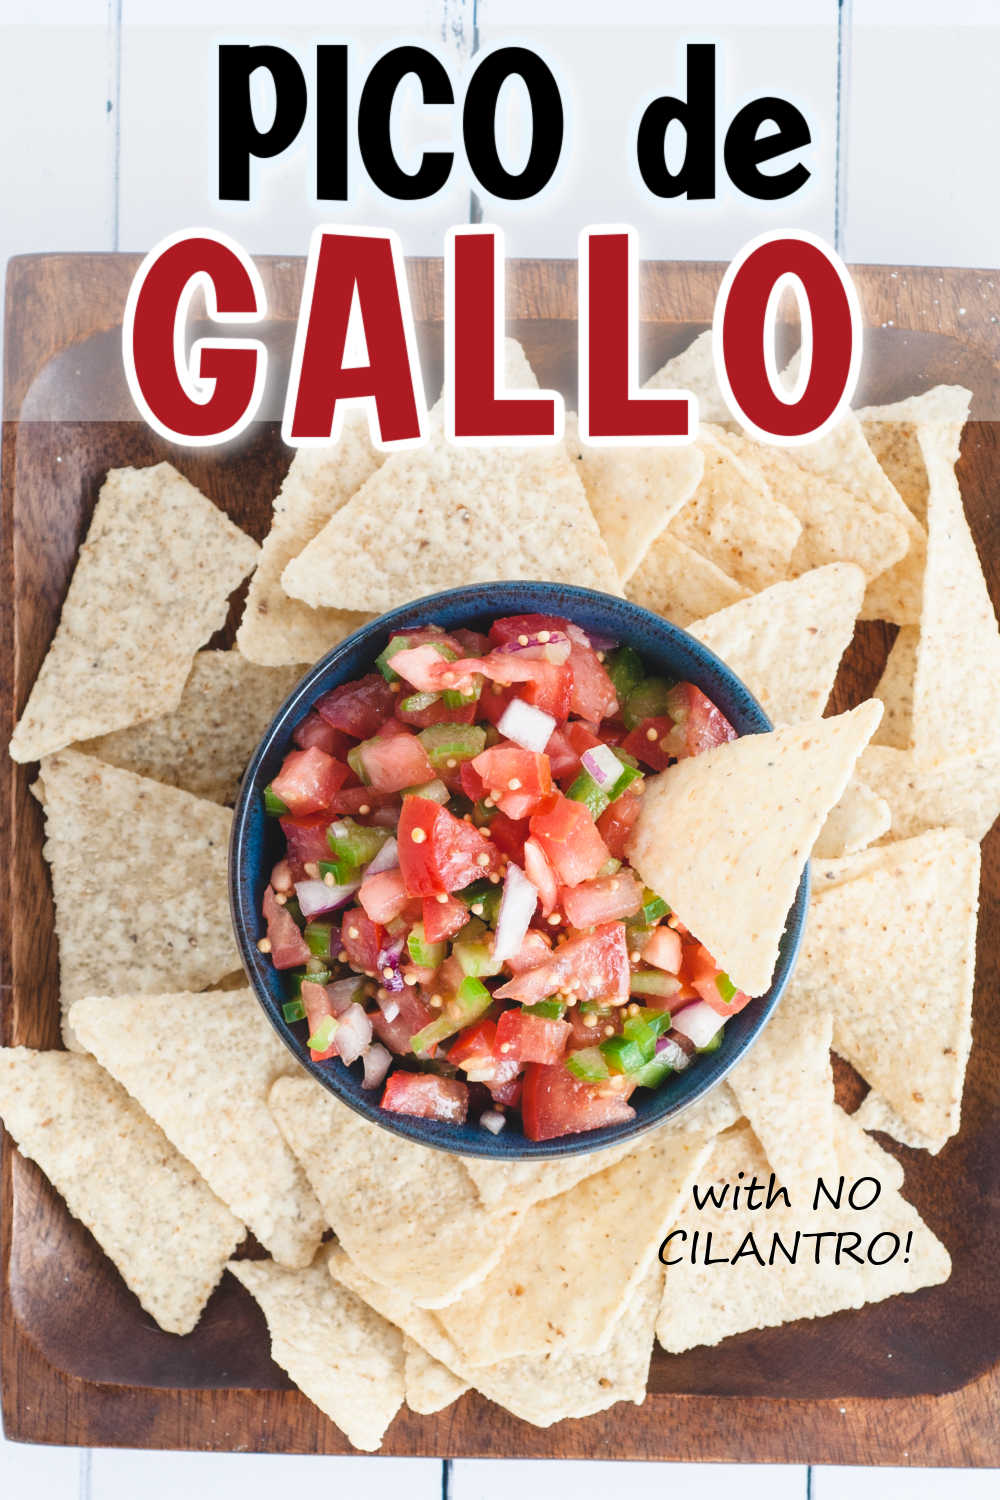 """Bowl of Pico De Gallo with chips surrounding it and the words """"Pico De Gallo"""" and """"with NO CILANTRO!"""" on top of the image."""